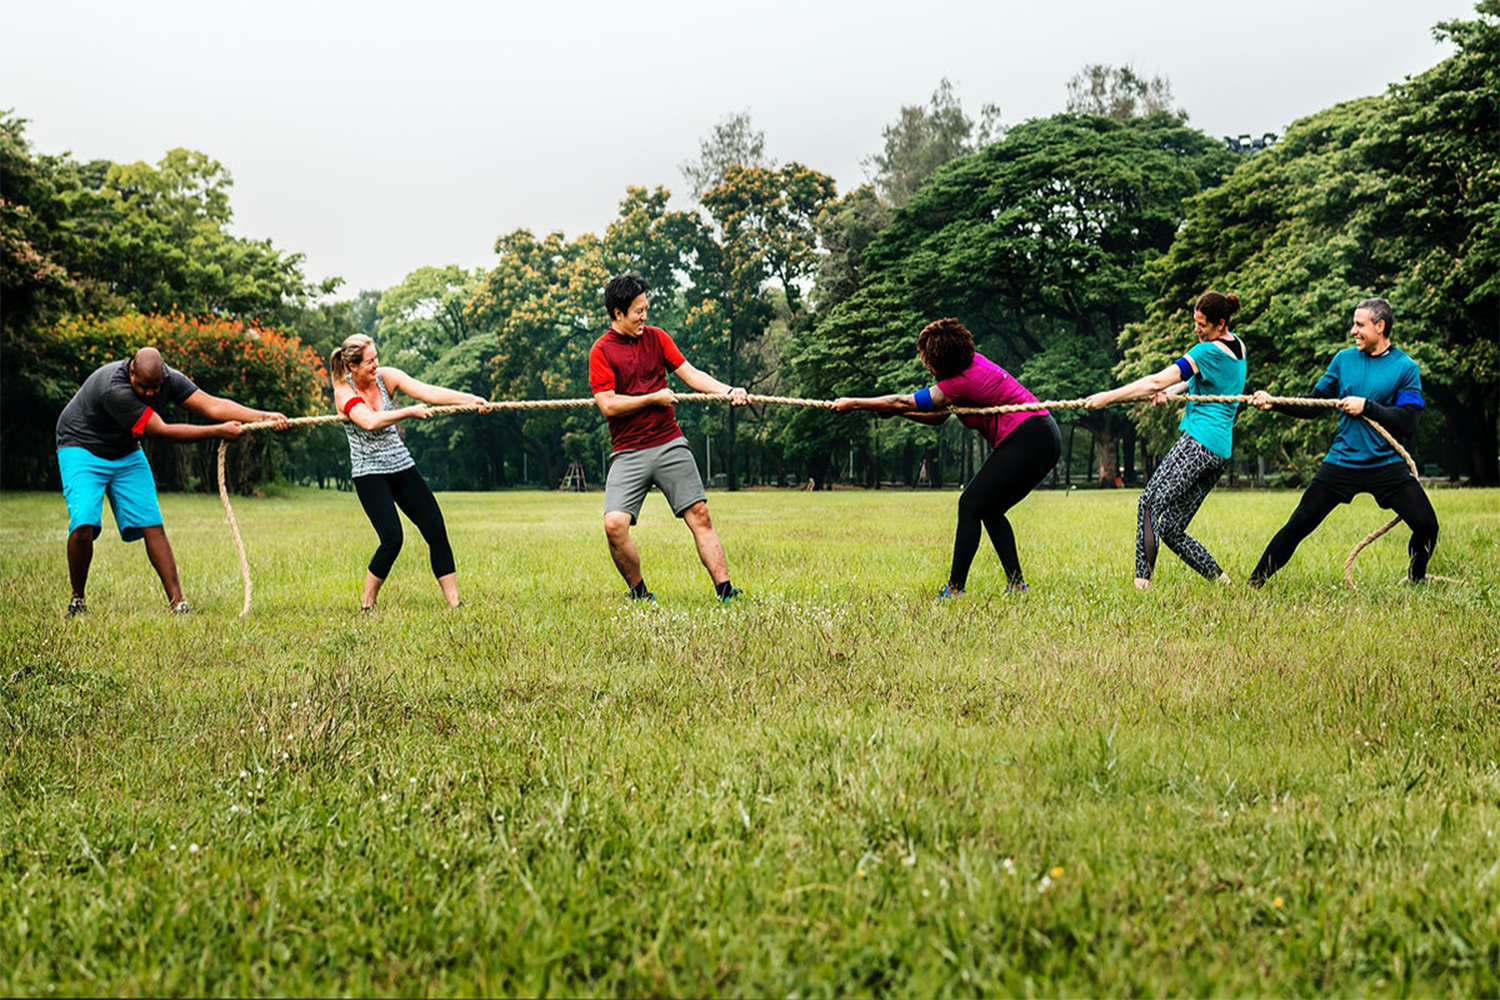 tug of war at a family reunion game